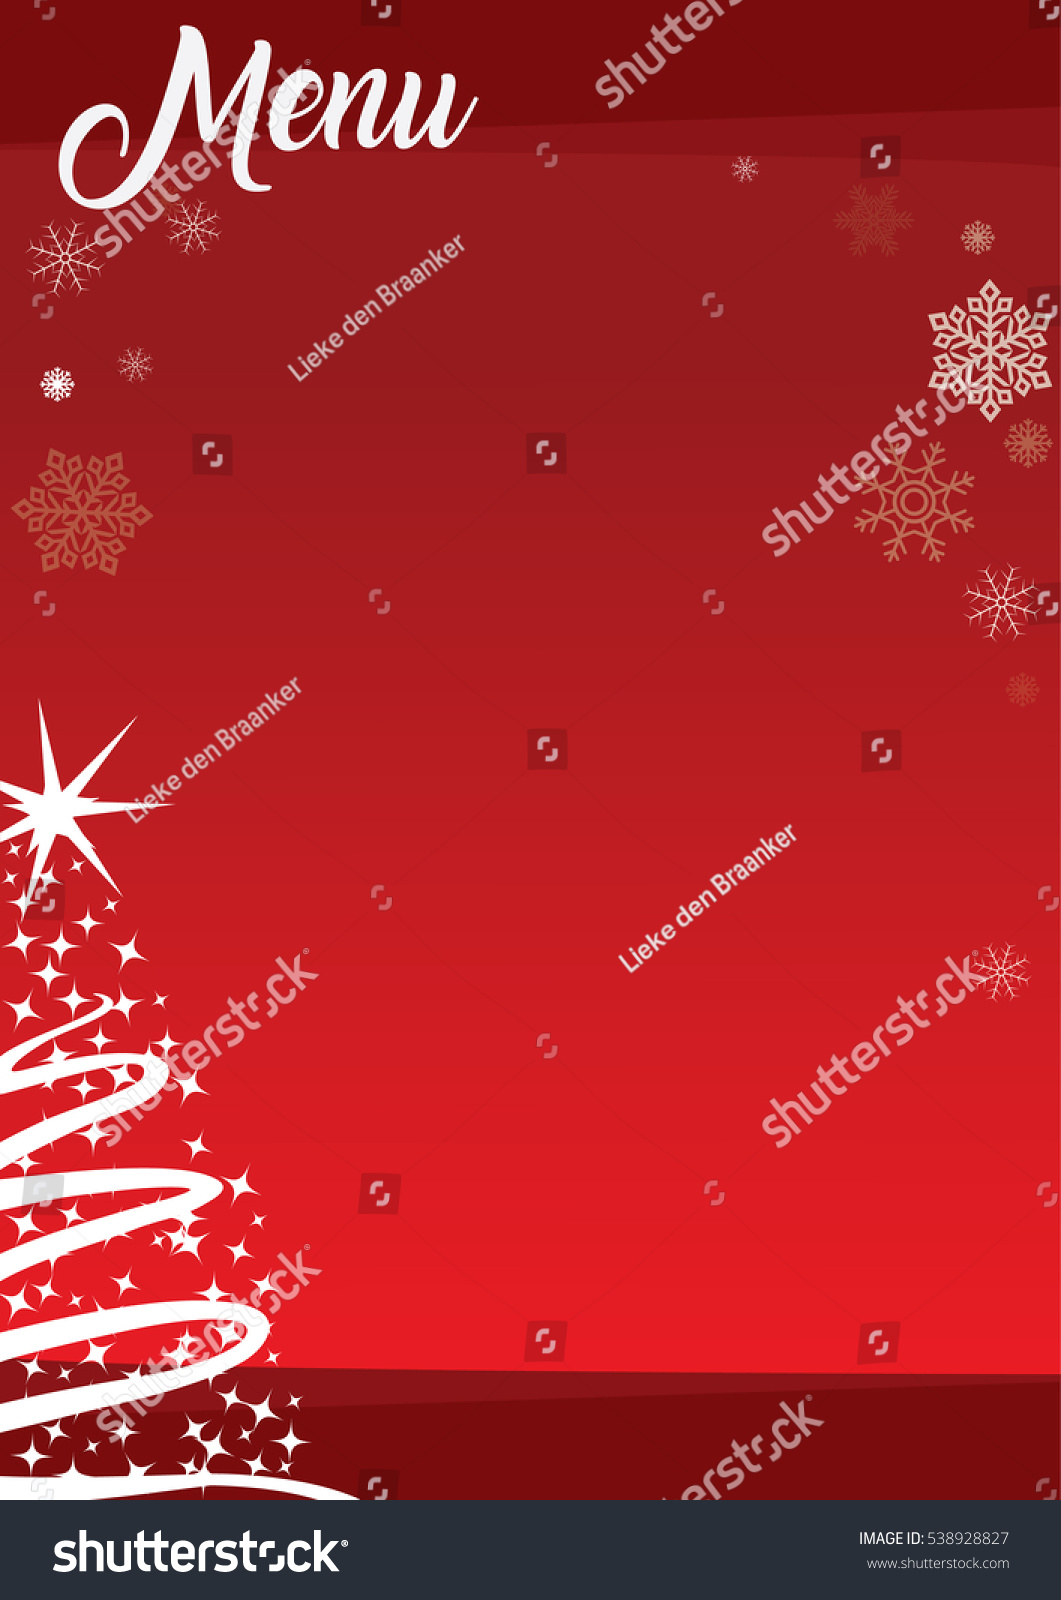 Christmas Menu Template Red Background Decorations Stock Vector